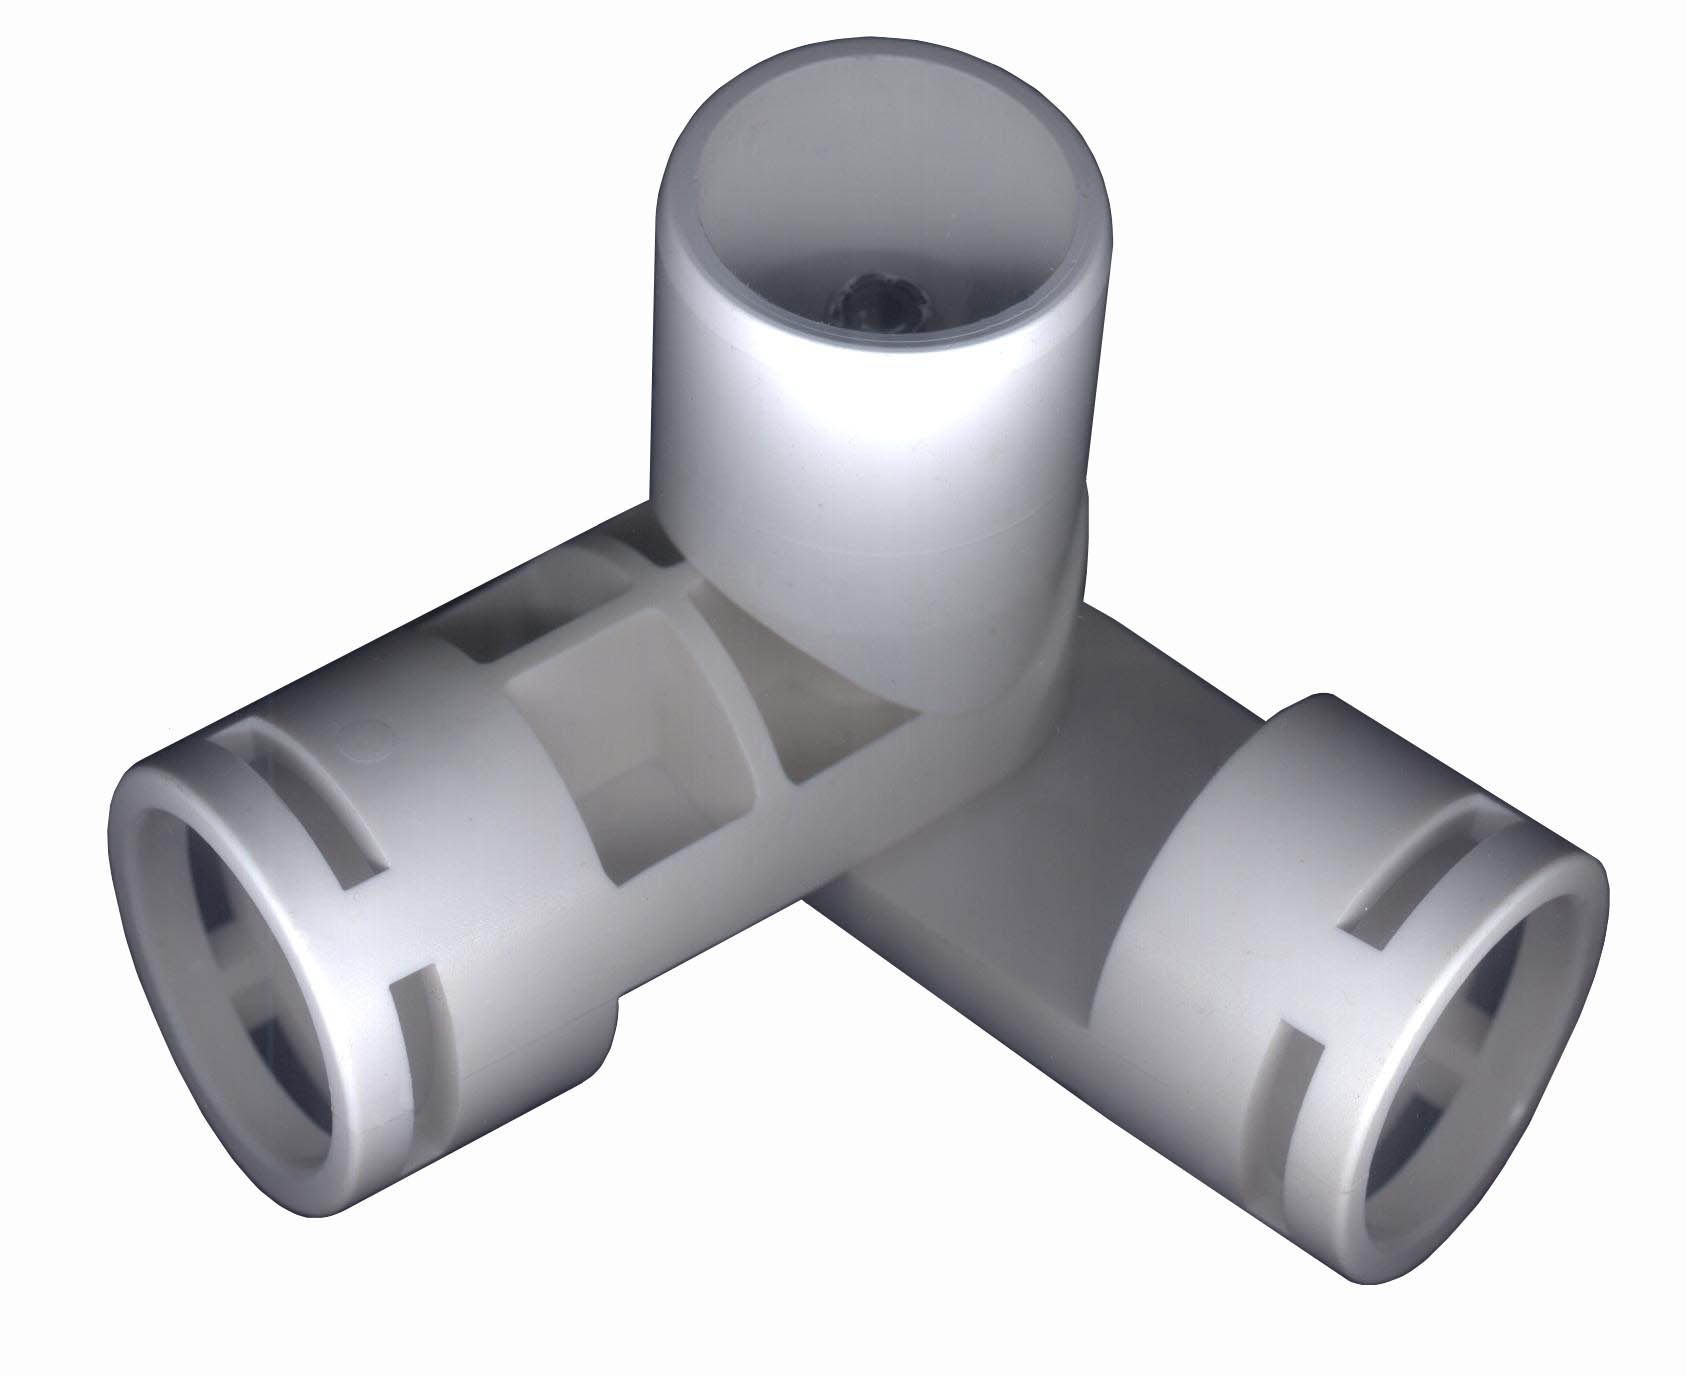 Adjustable 3 Way Joint Fittings For 1 Pvc 243 3f Creative Shelters